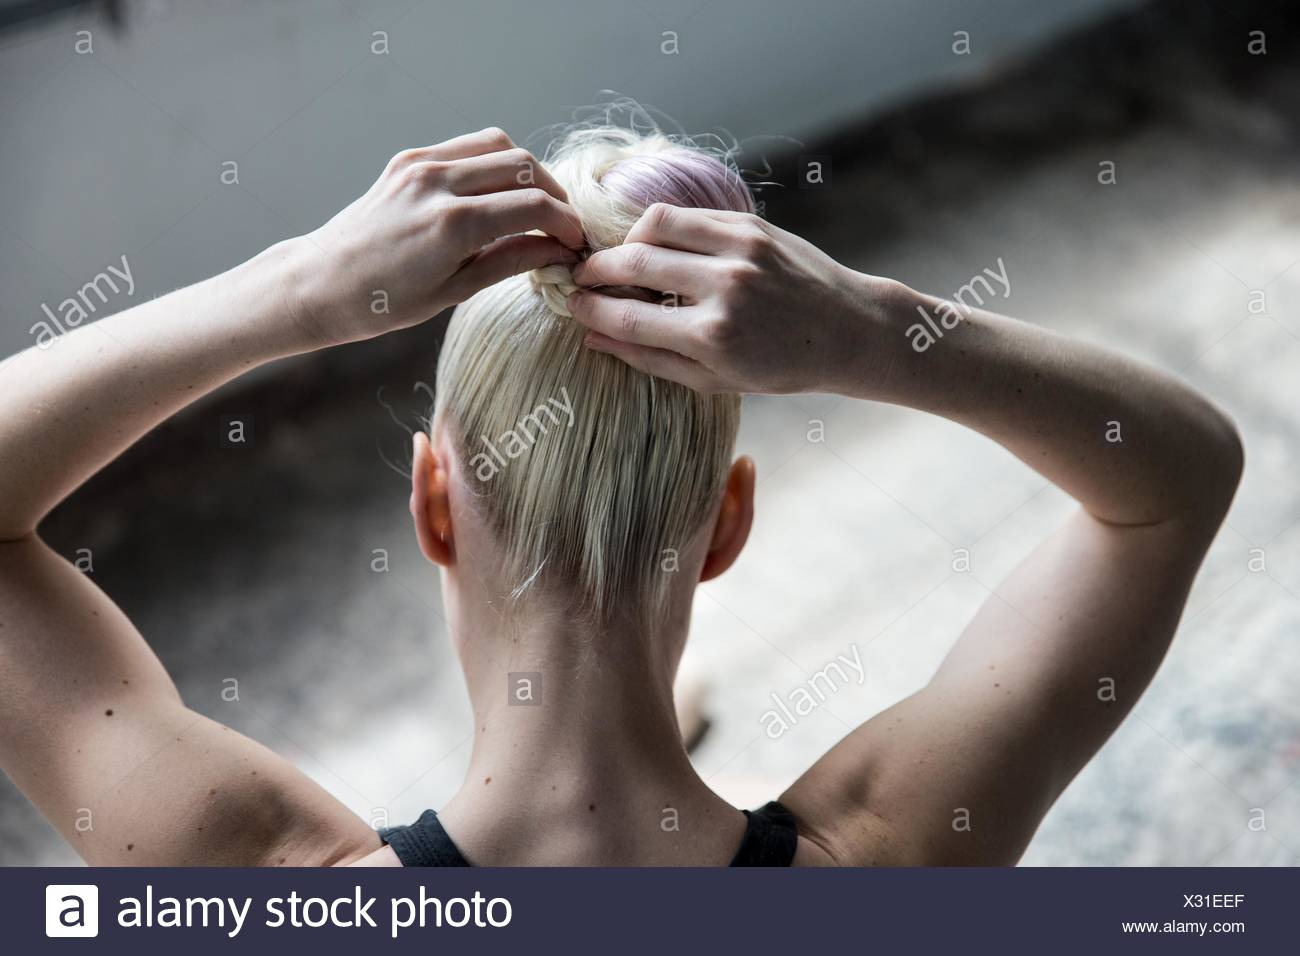 Woman tying up hair in studio - Stock Image